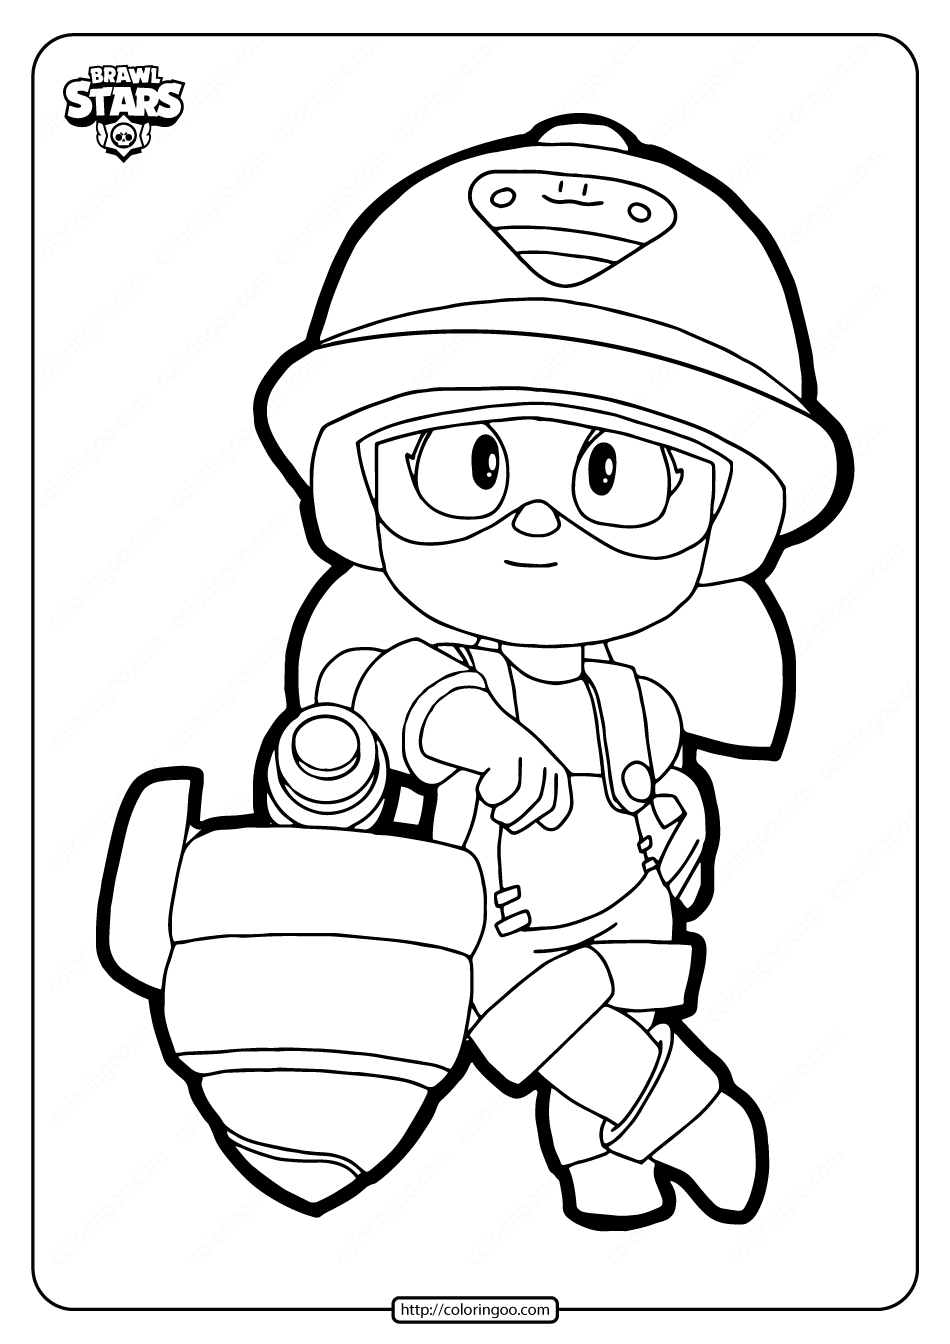 Free Printable Brawl Stars Jacky Coloring Pages